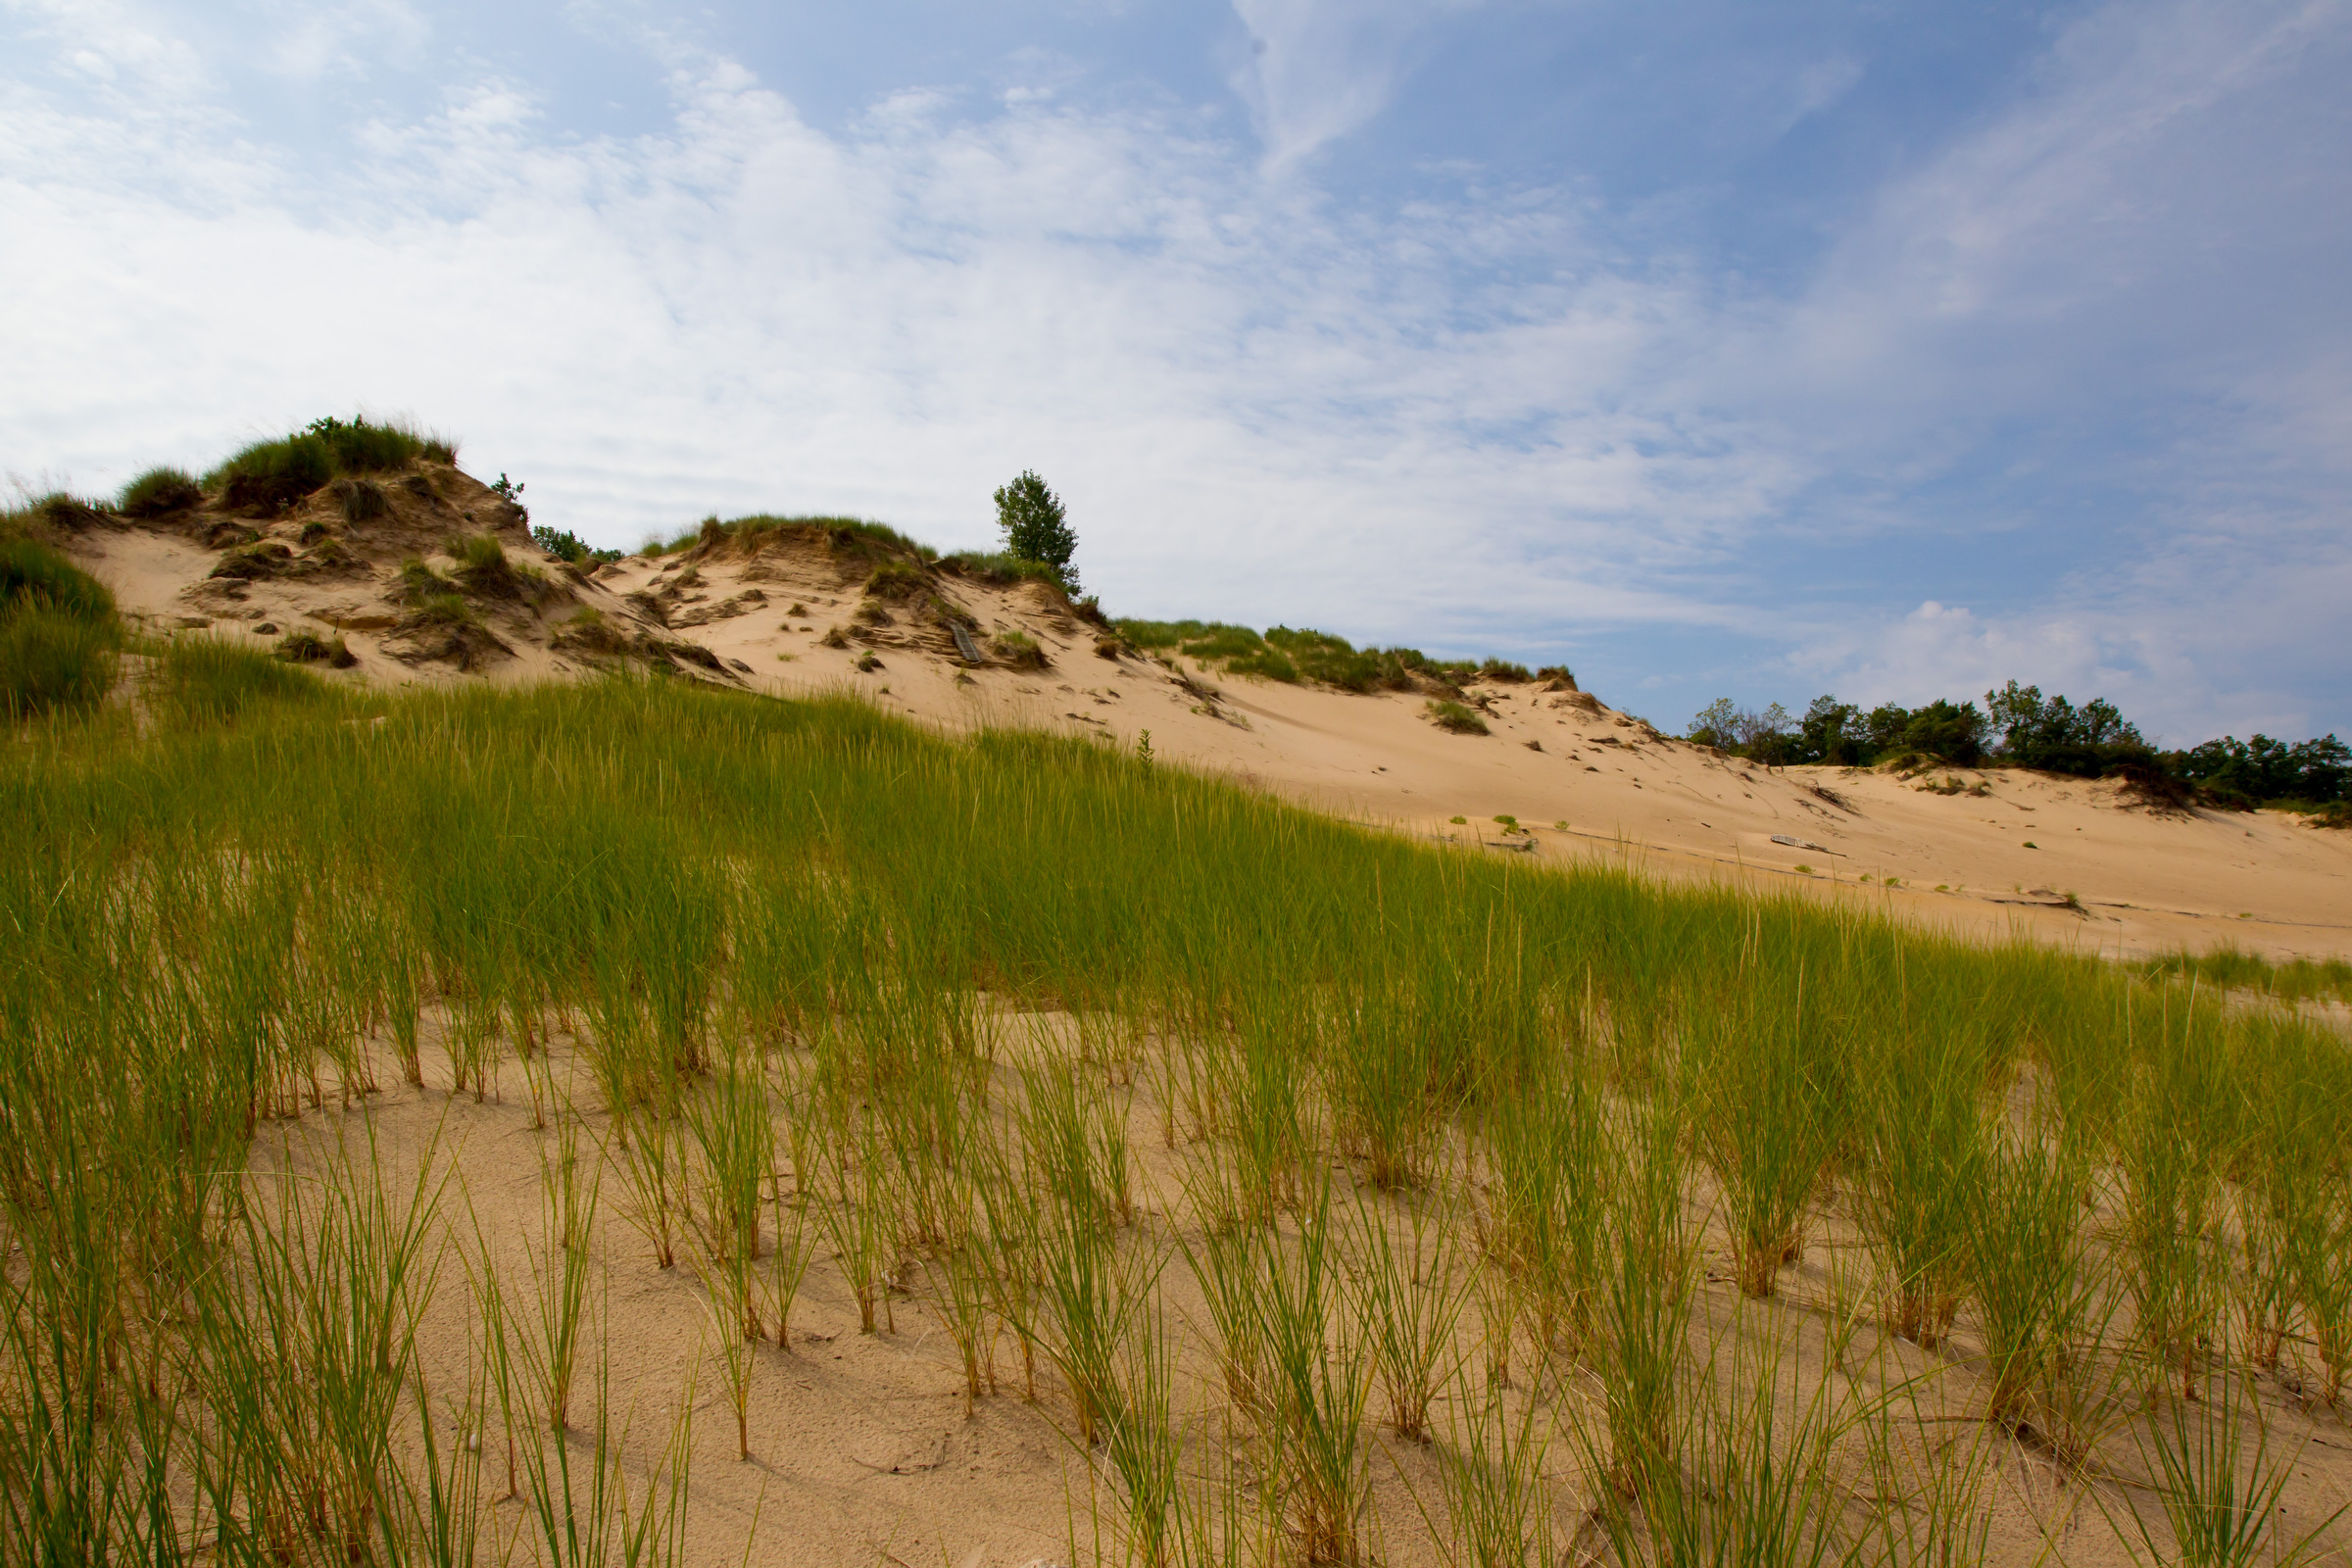 An overall view of the sand dunes at Mt. Baldy at the Indiana Dunes National Lakeshore in Michigan City, Indiana.